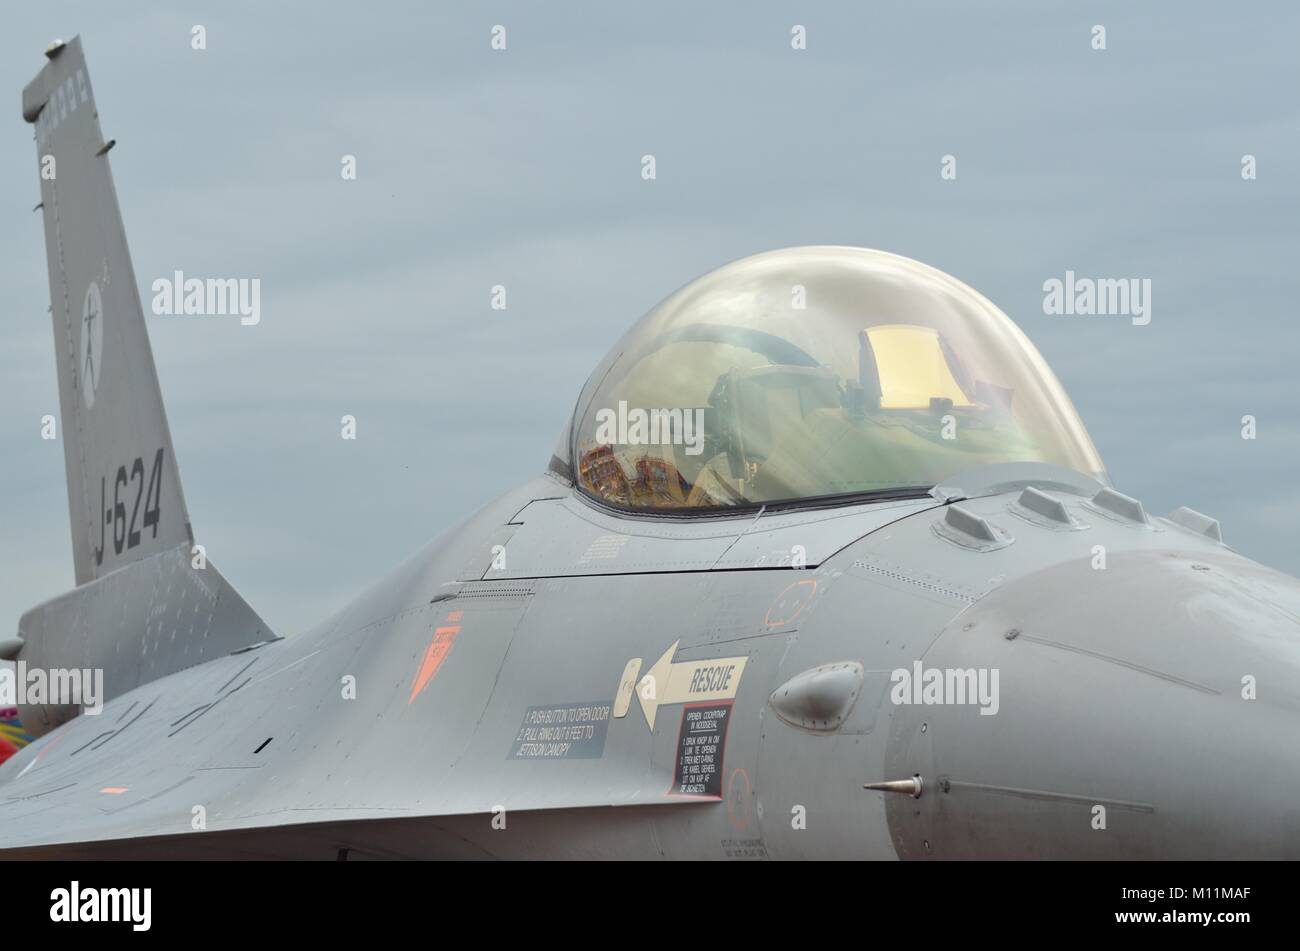 General Dynamics F-16AM, Royal Netherlands Air Force - Stock Image